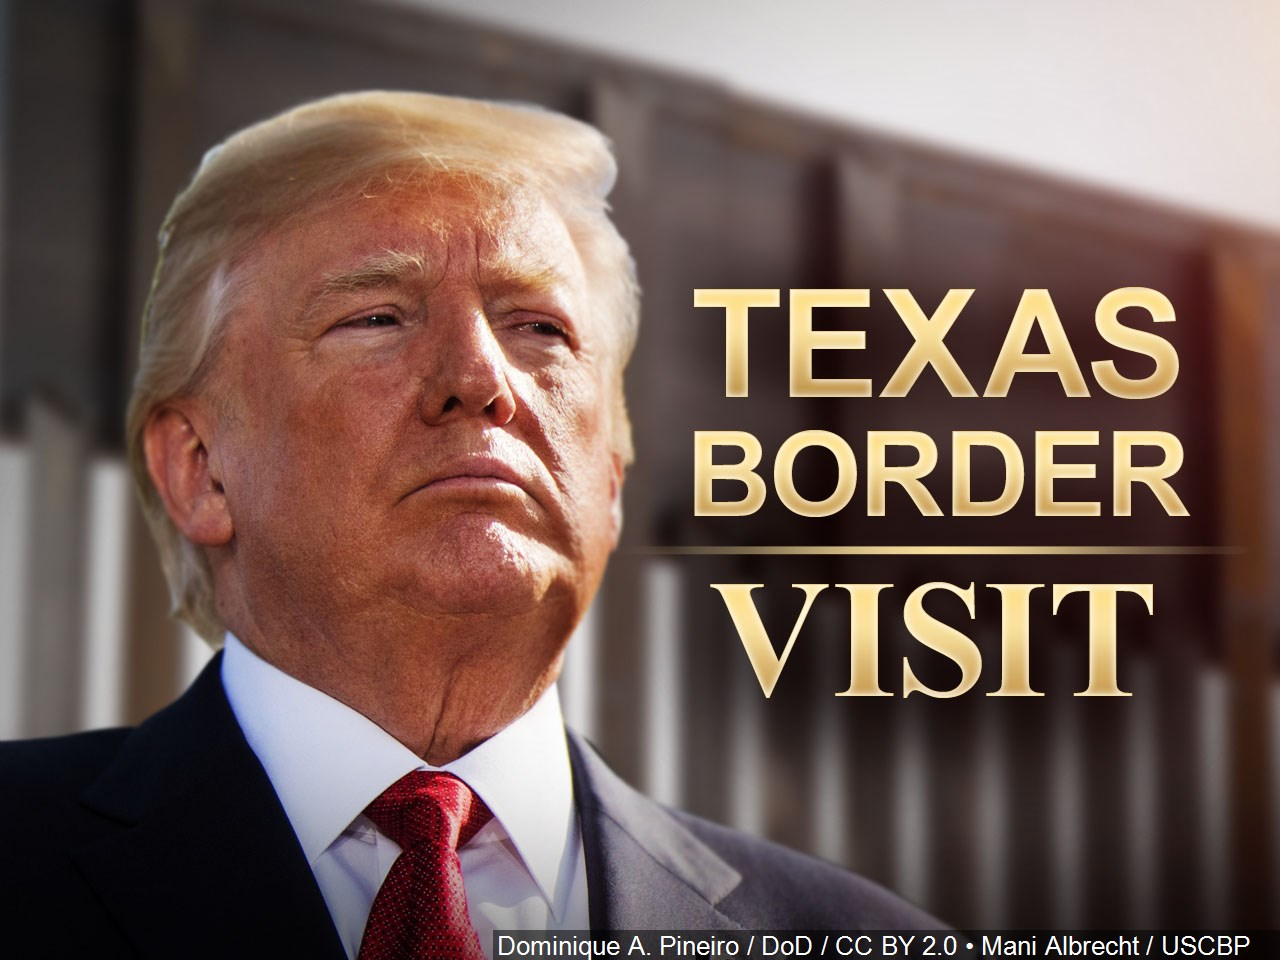 Texas Border Visit Trump_1549902396840-118809306.jpg